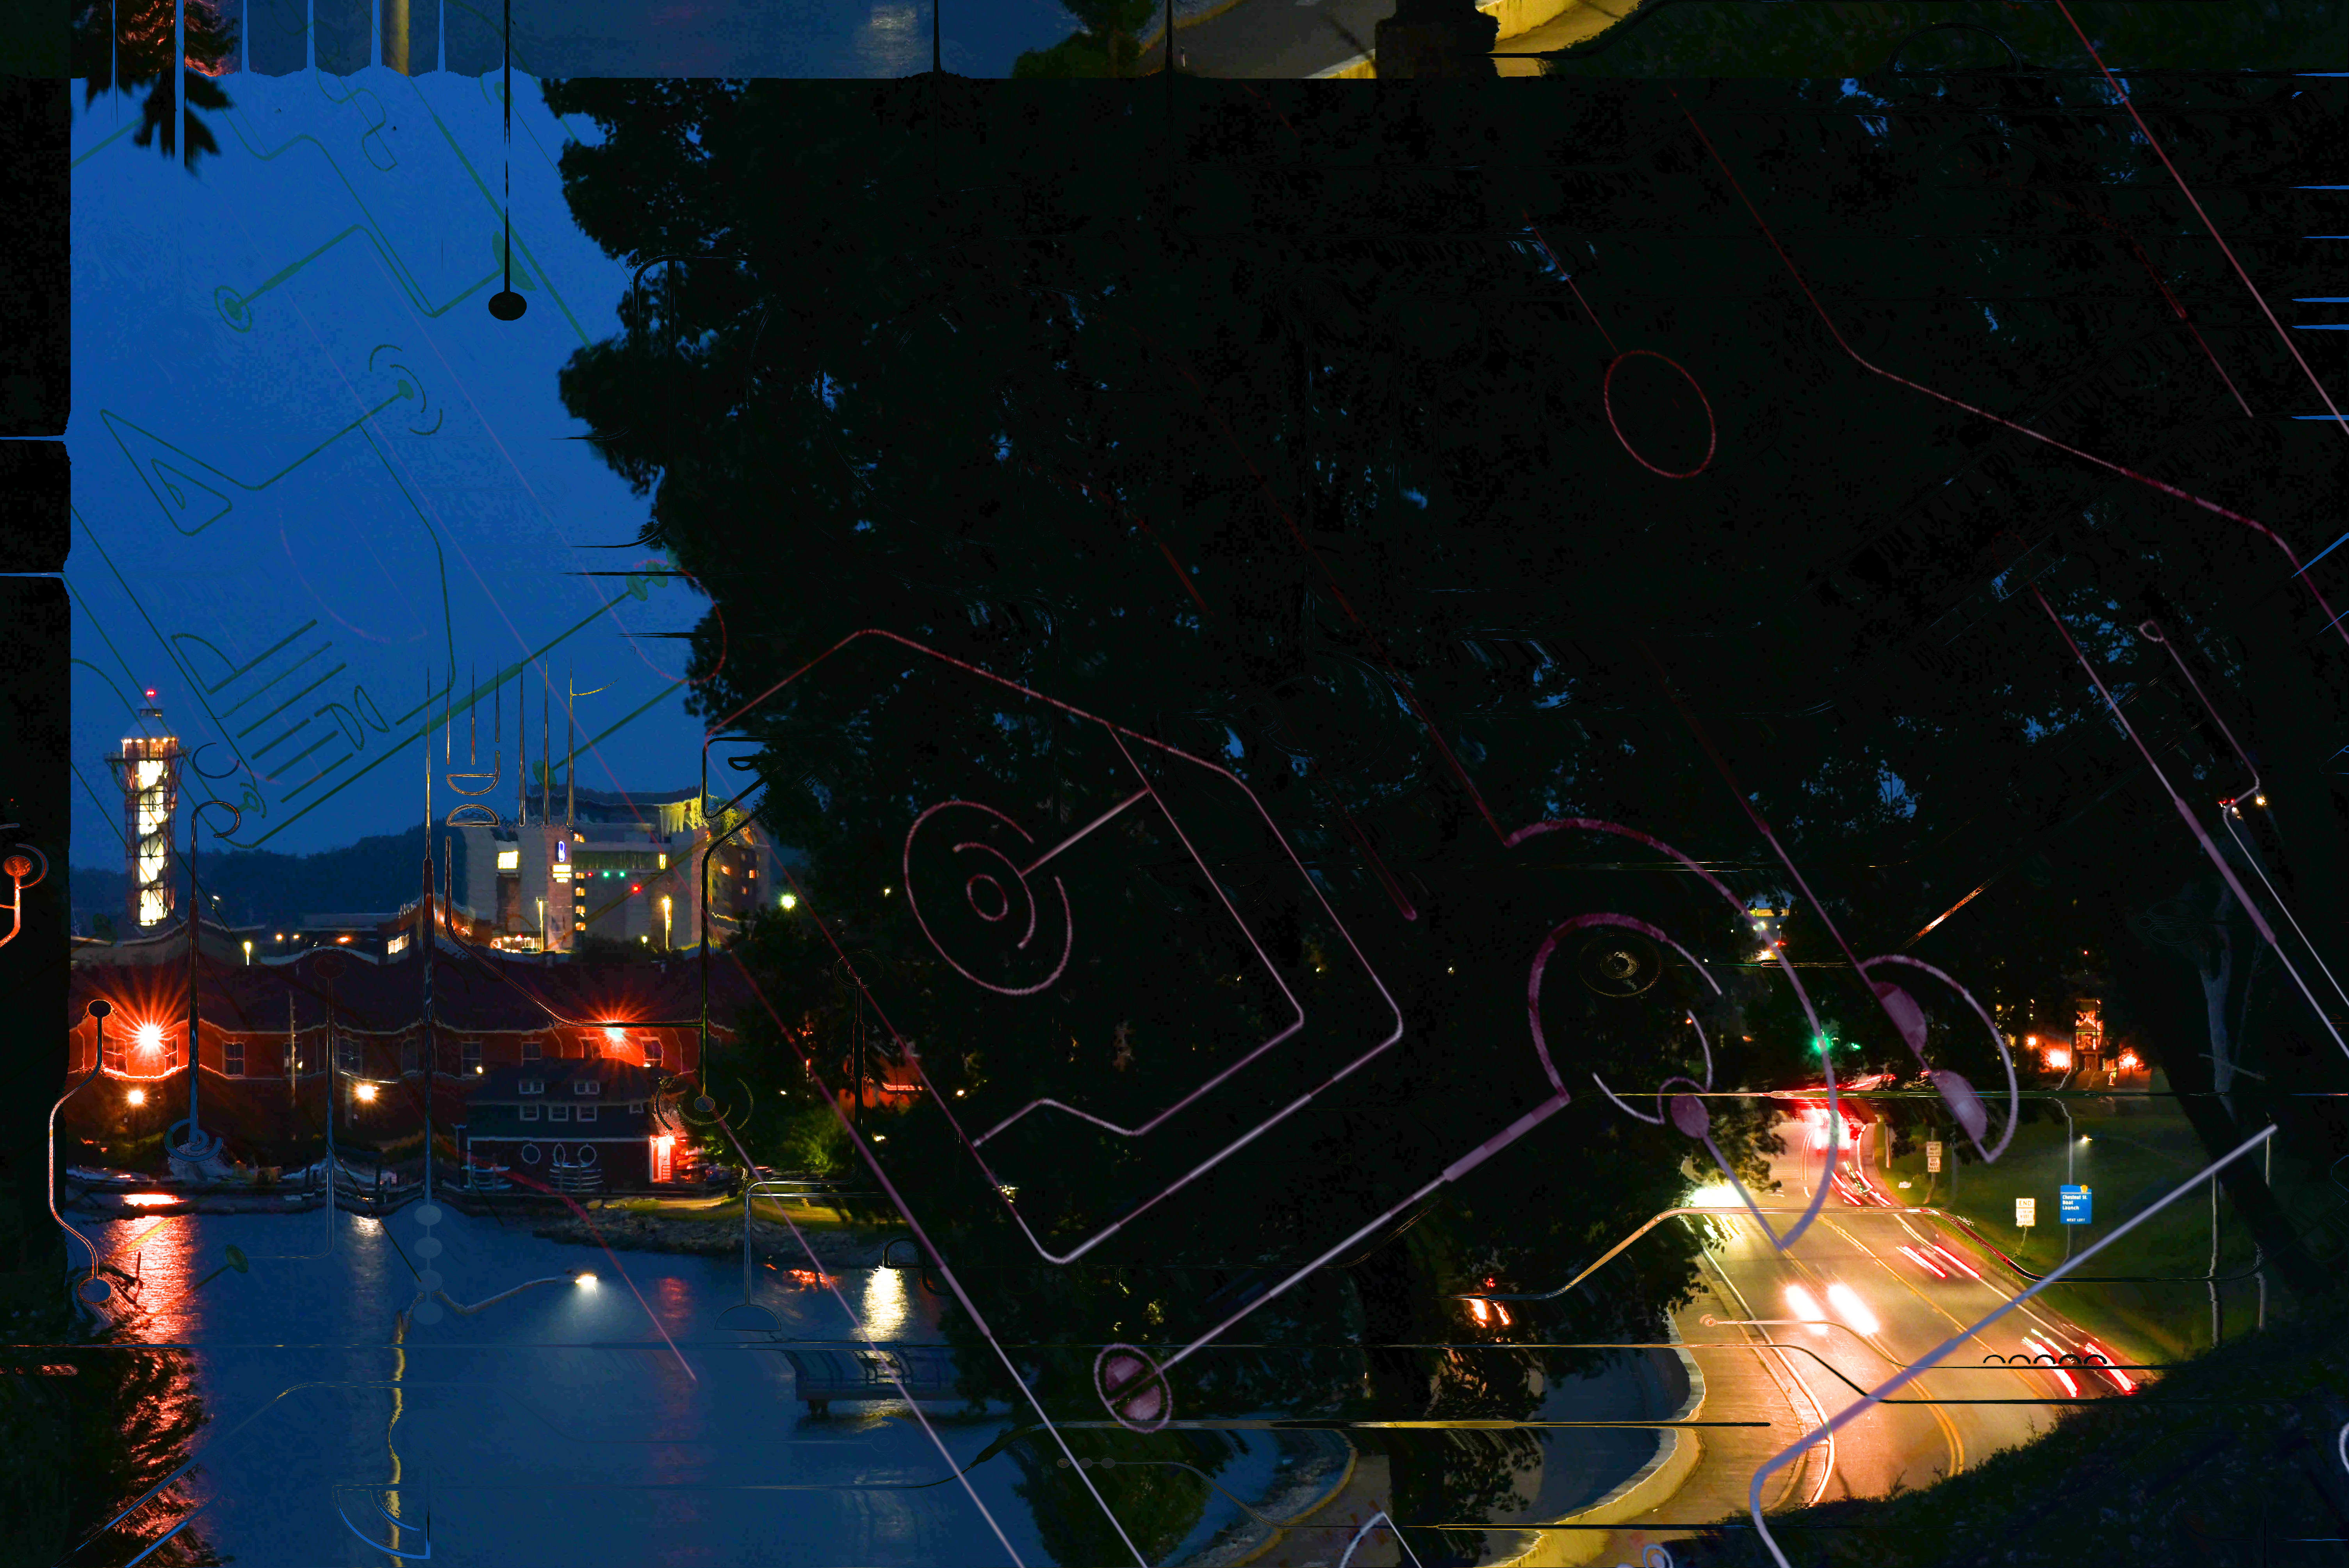 Image is a photo that was edited on a computer. The photo is a cityscape at night, featuring water, trees, buildings, a street, and lights. The photo is overlaid with thin lines that represent digital infrastructure in a city.